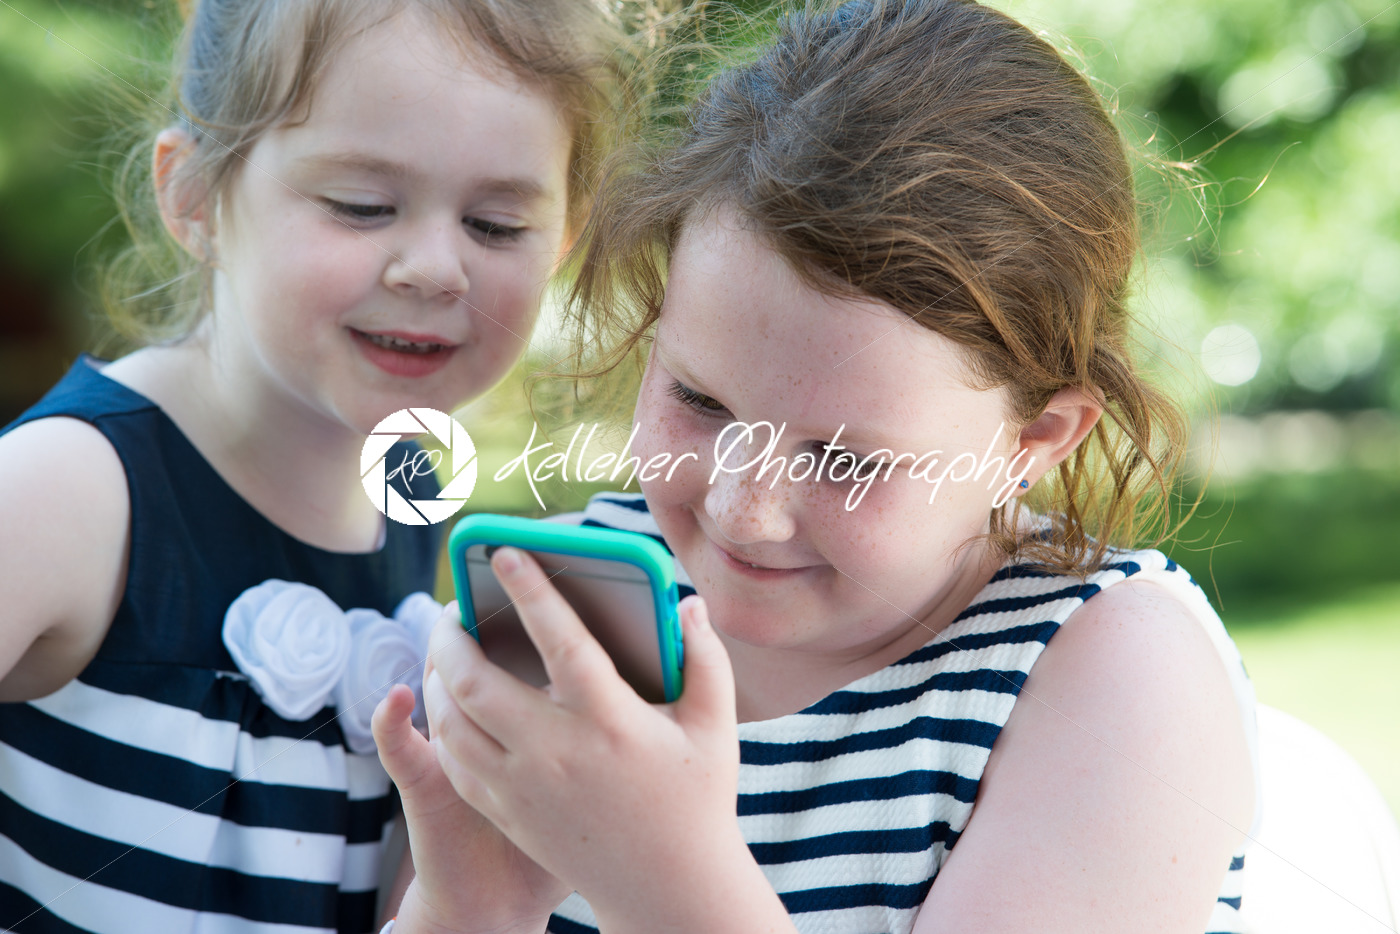 Happy Laughing Children Playing with Smartphone Outside - Kelleher Photography Store